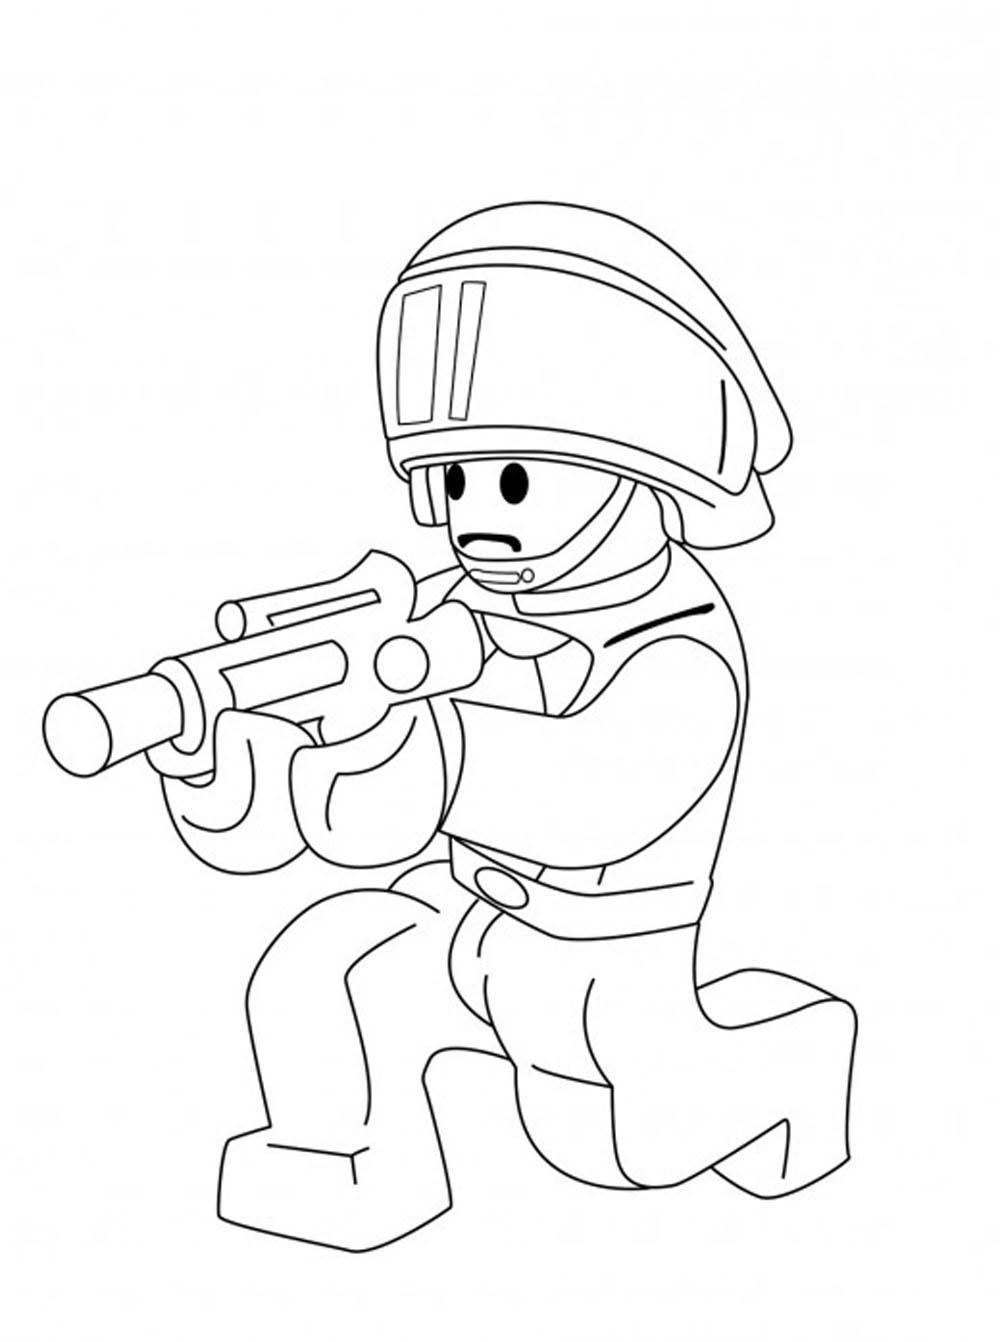 lego star wars printable coloring pages star wars lego coloring pages bal fett coloring pages star coloring printable pages lego wars